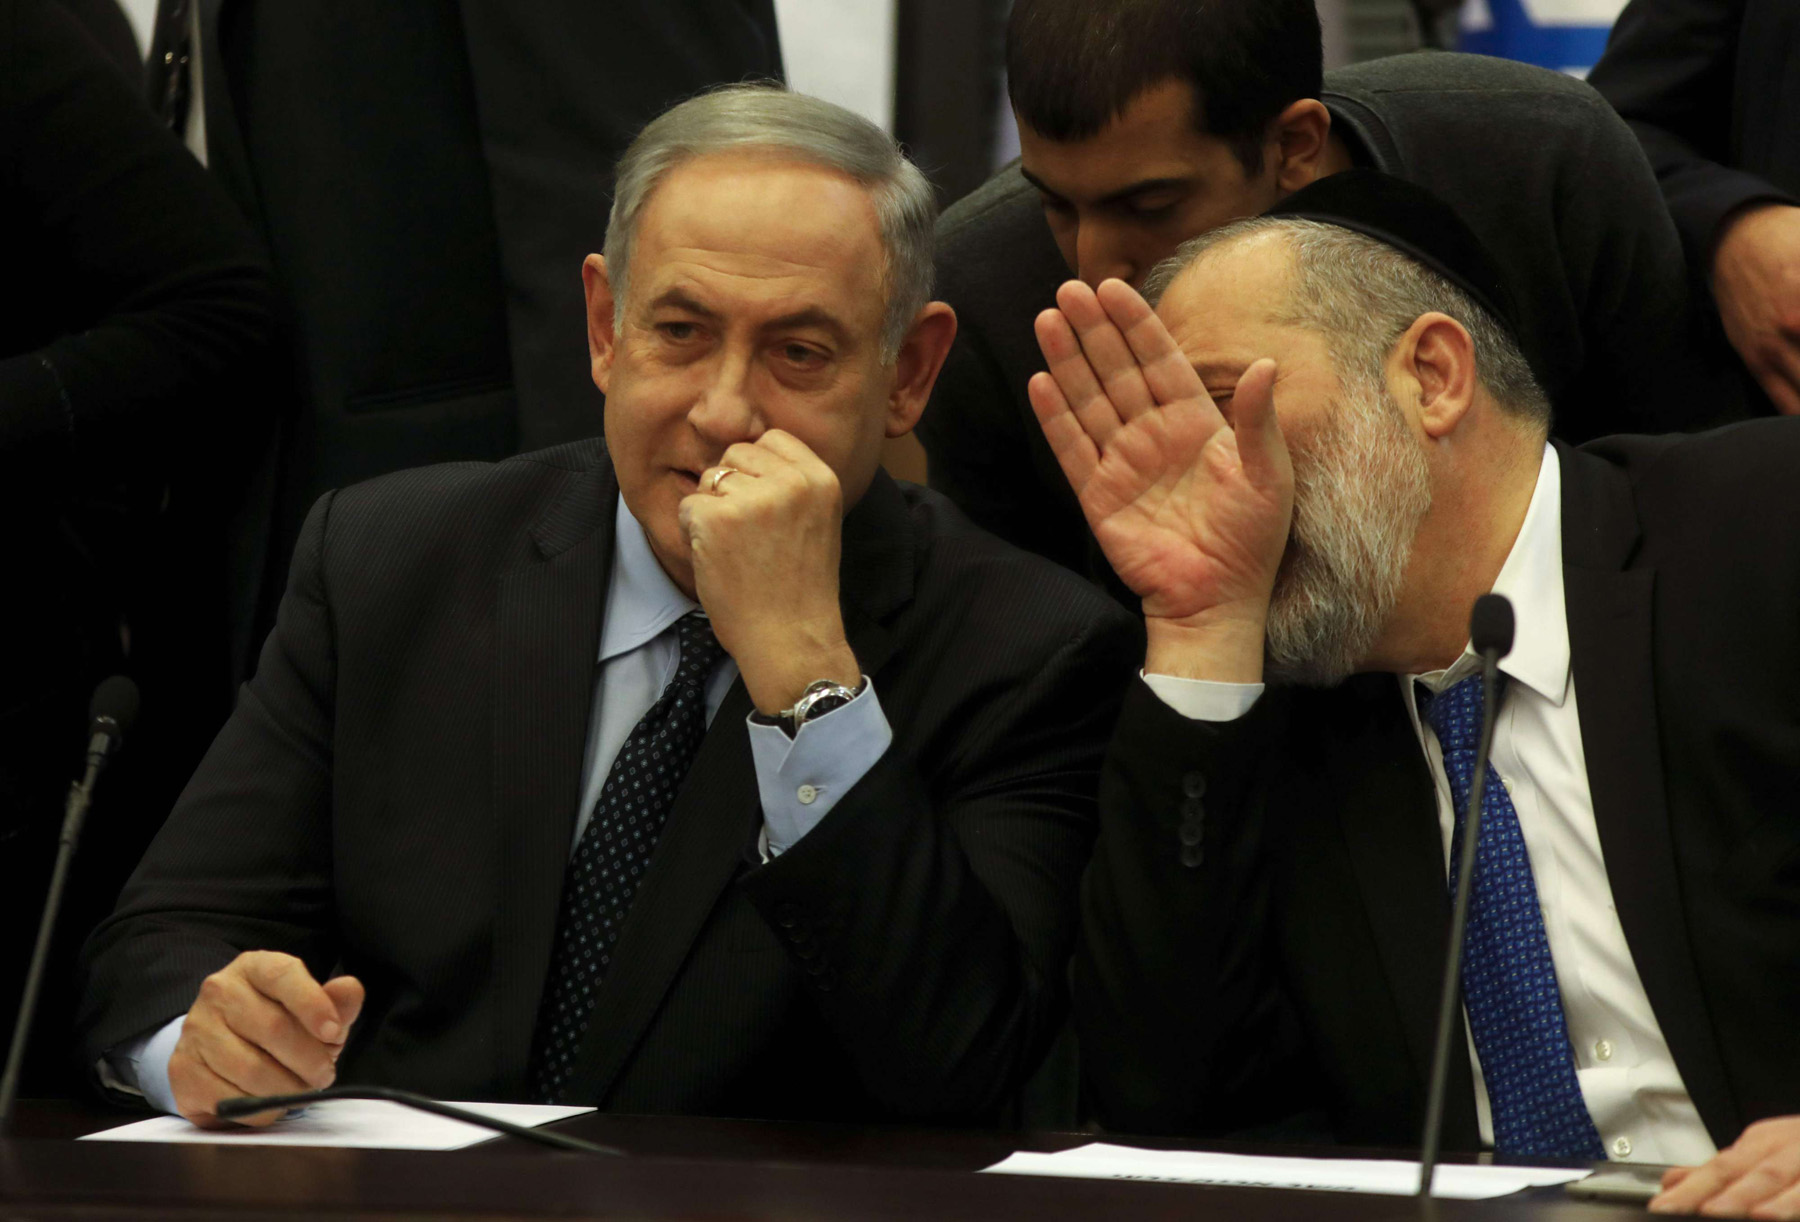 Arye Deri (R), the chairman of Israel's Shas party, whispers to Prime Minister Benjamin Netanyahu during a meeting of the right-wing block at the Knesset in Jerusalem on March 4. (AFP)